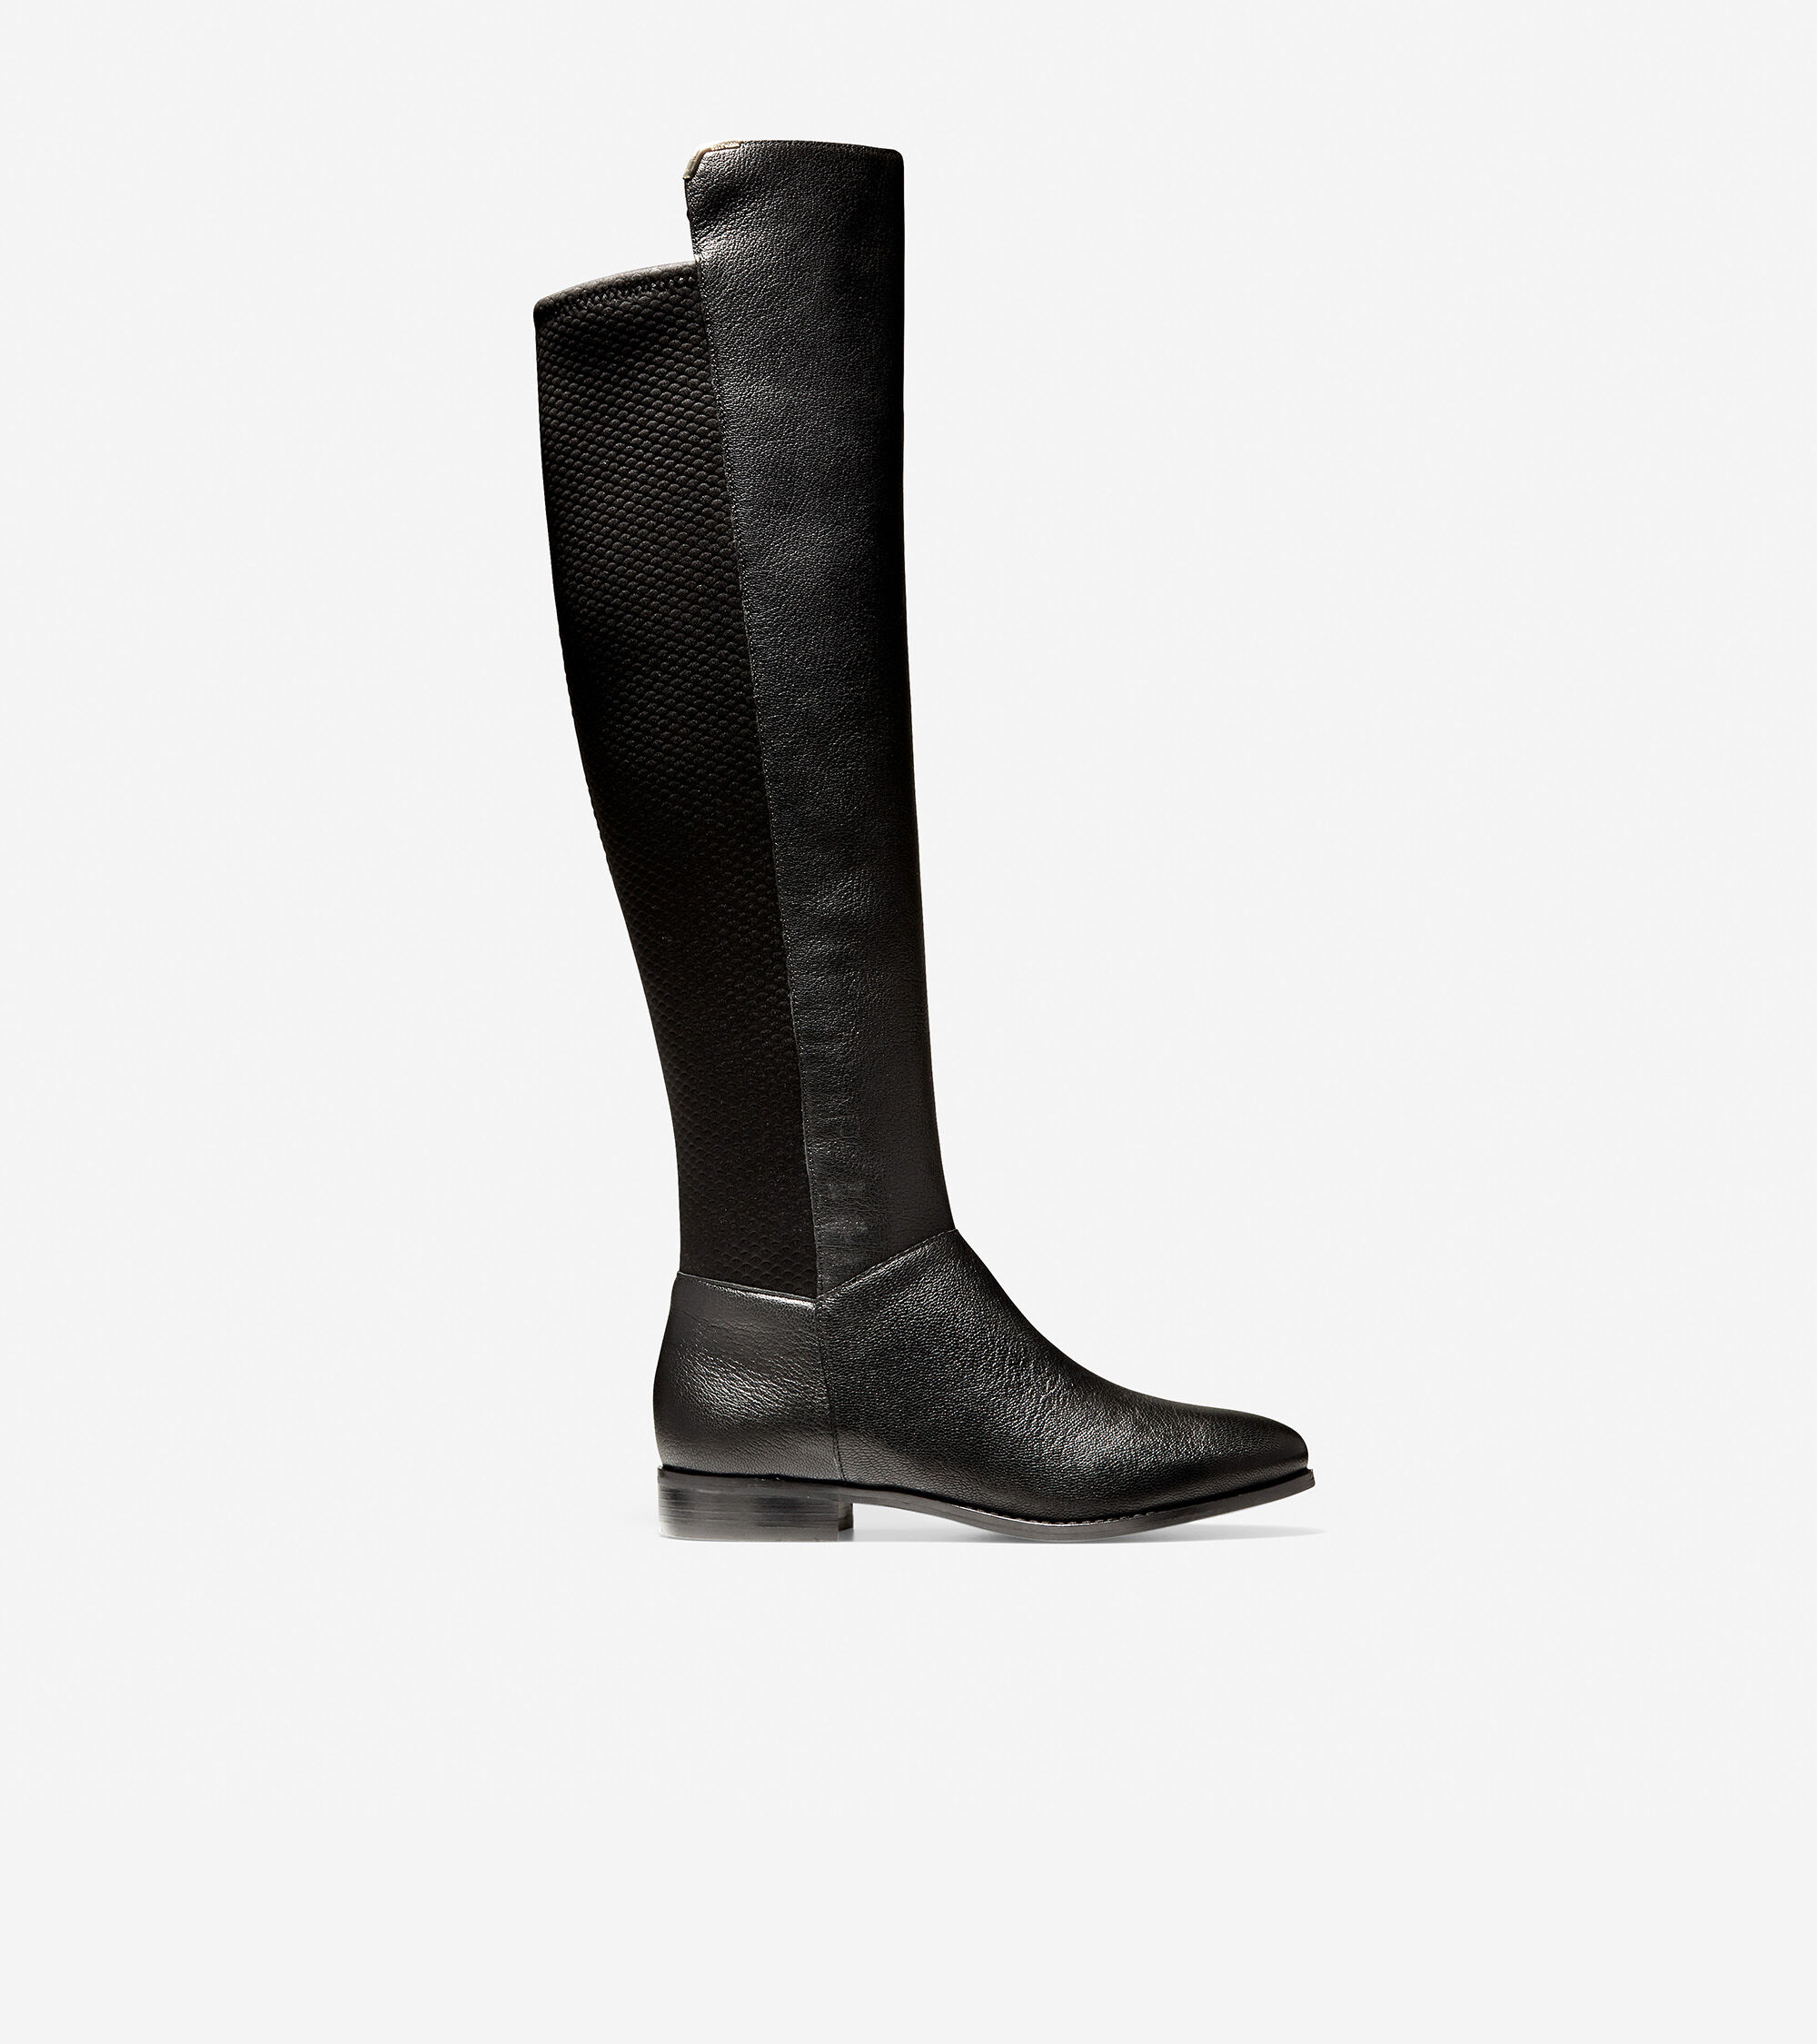 The Knee Boot in Black Leather